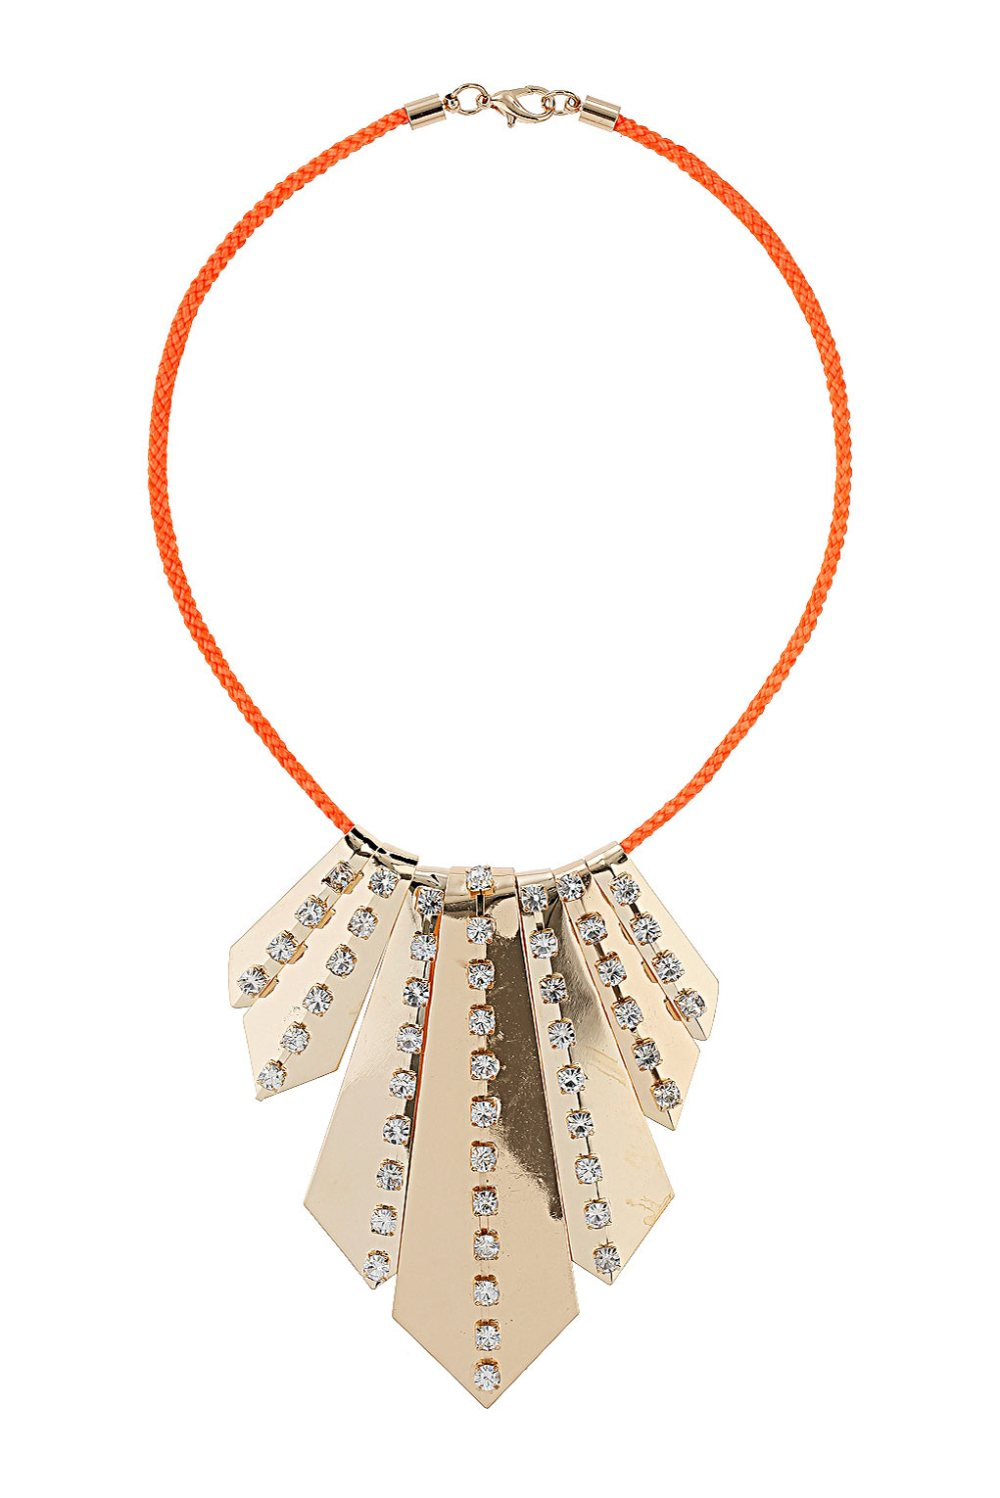 topshopnecklace